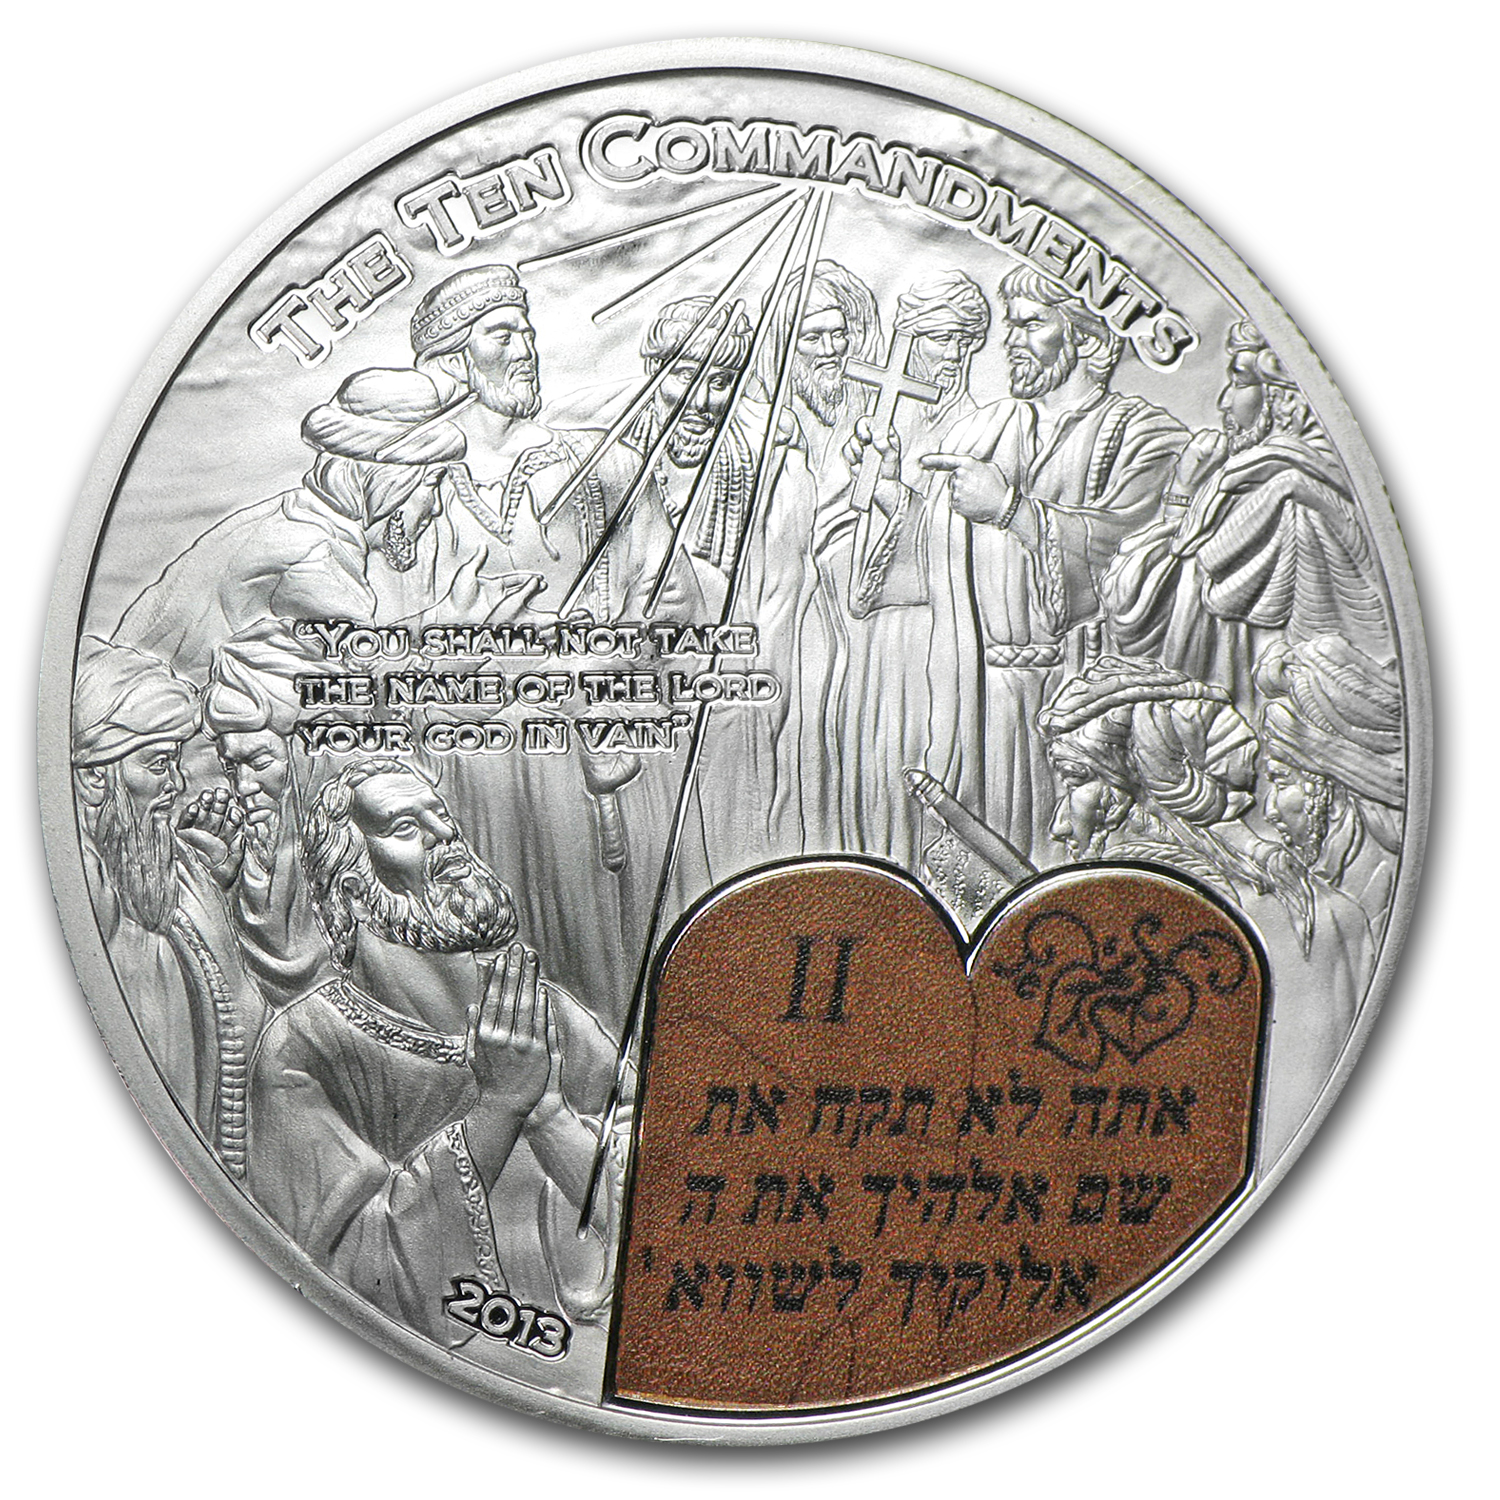 2013 Palau Silver $2 Ten Commandments (2nd Commandment)